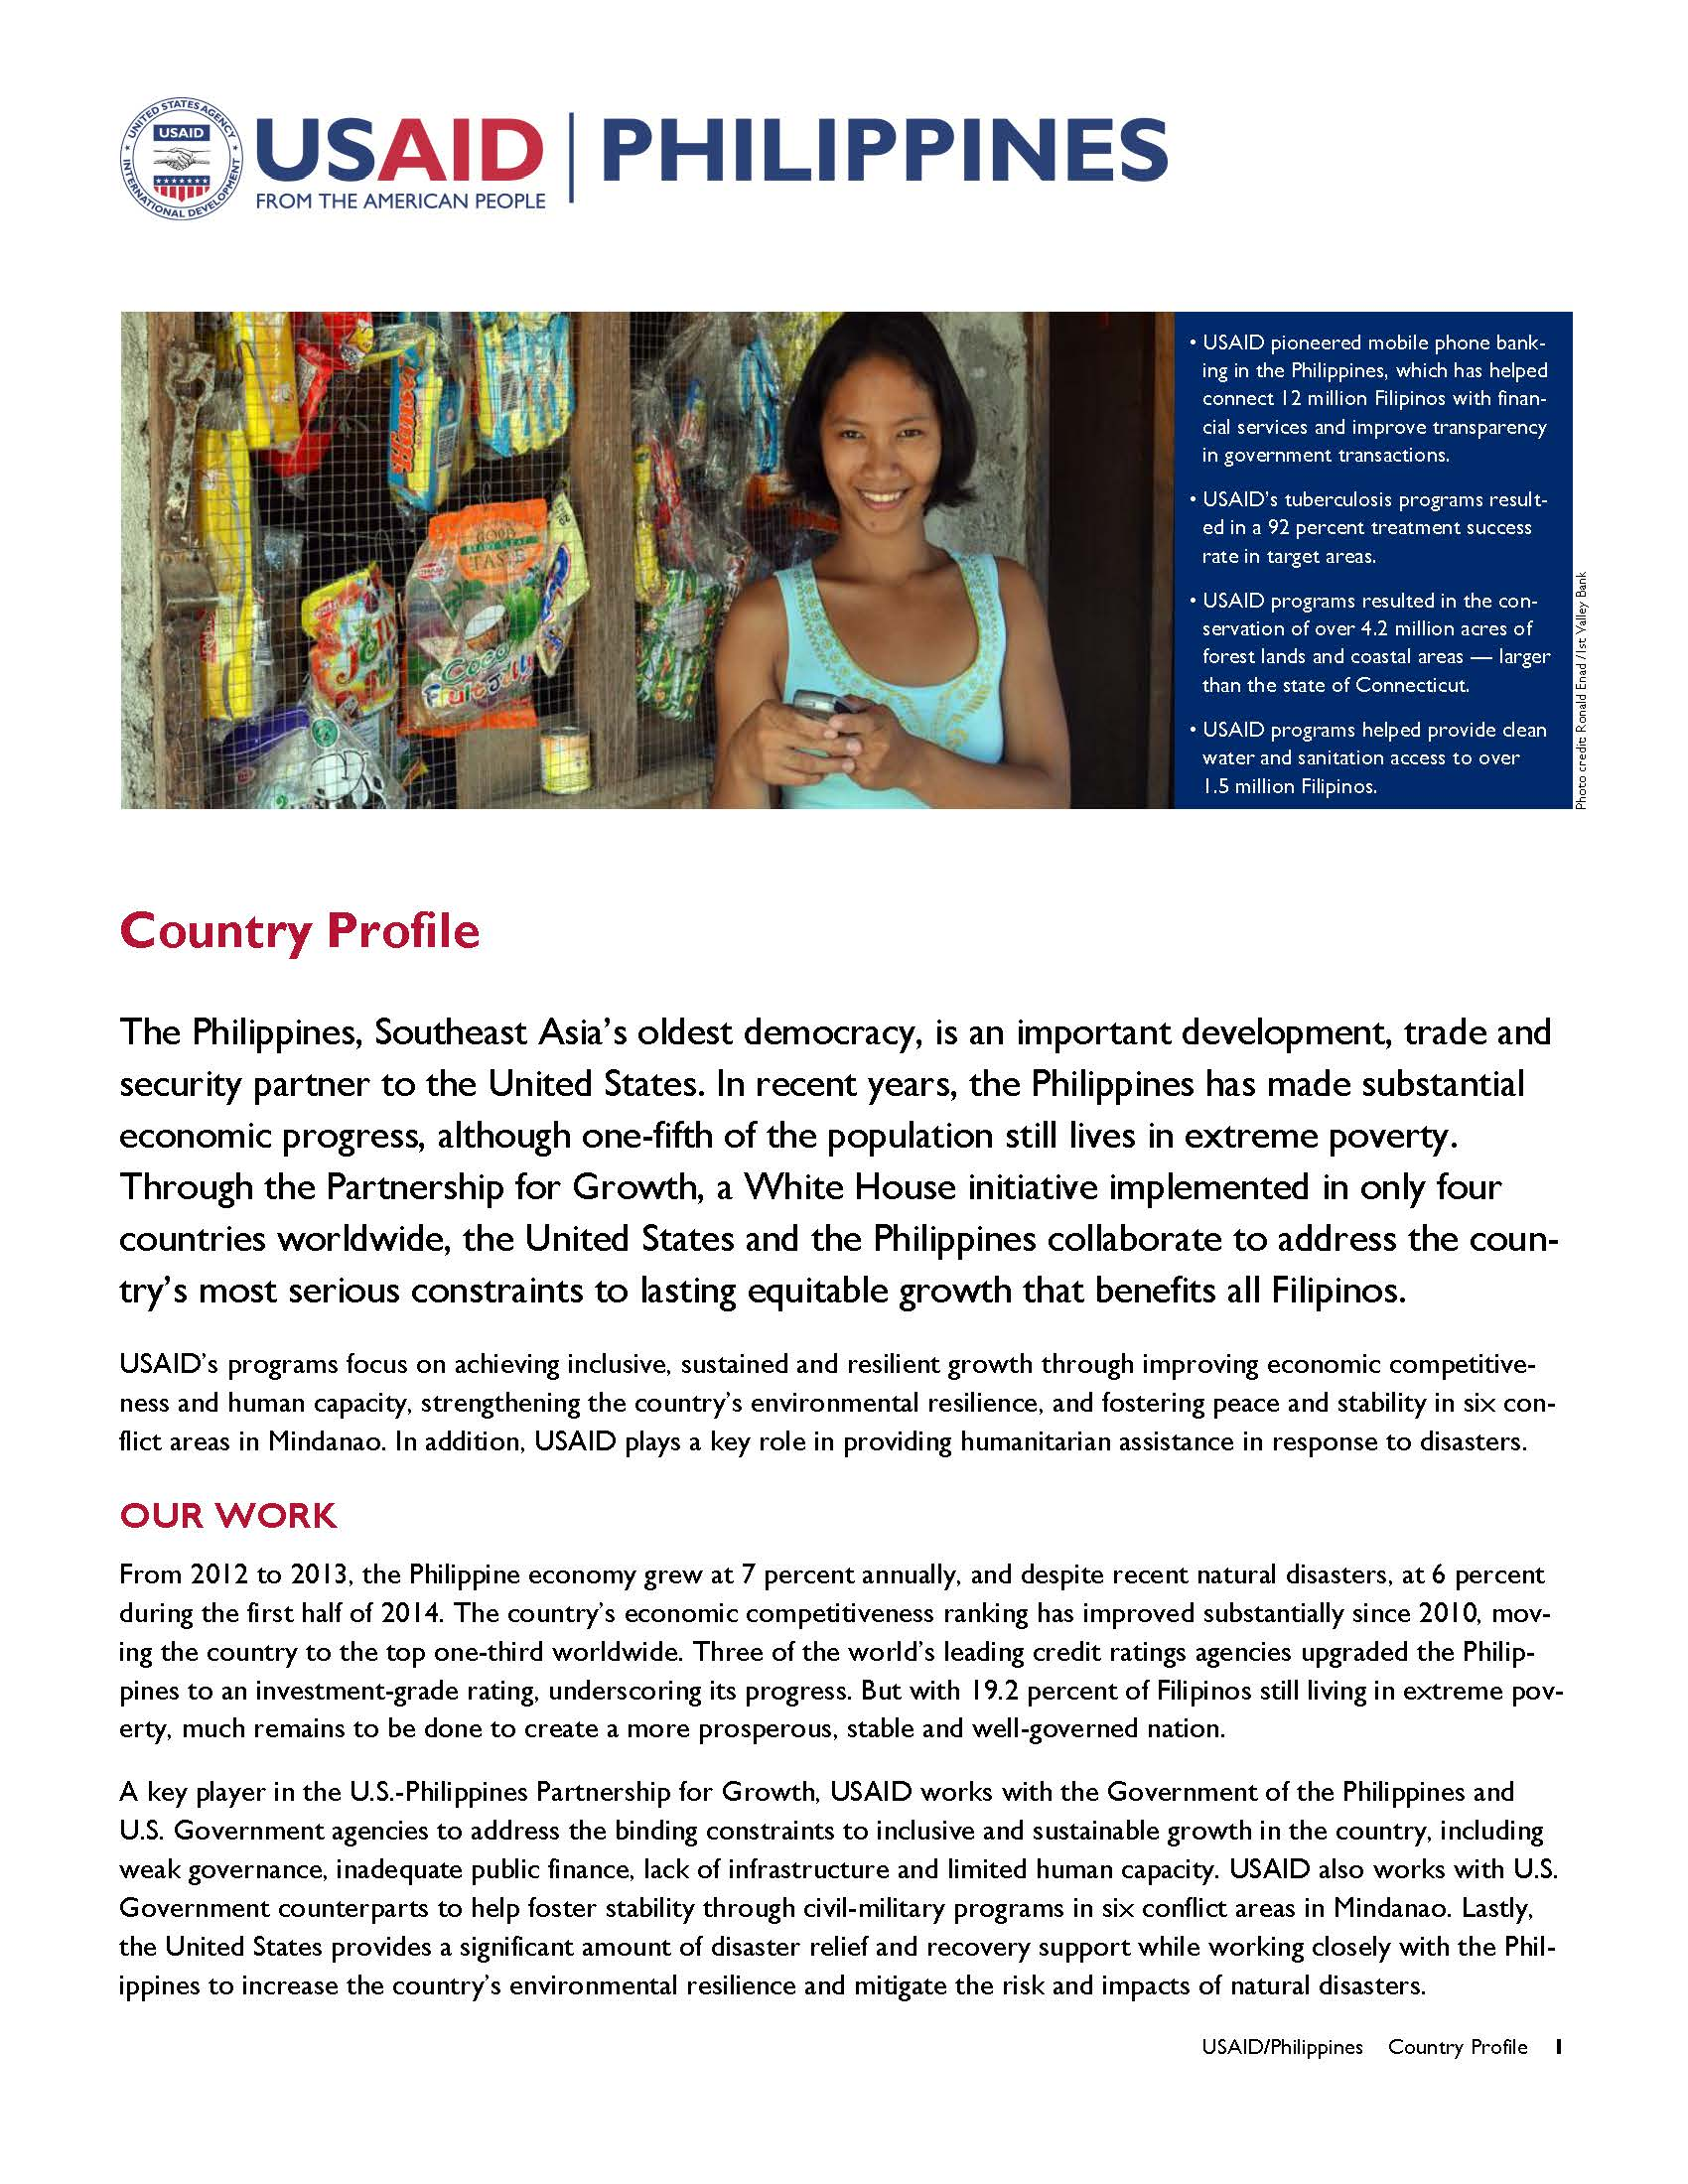 Philippines Country Profile